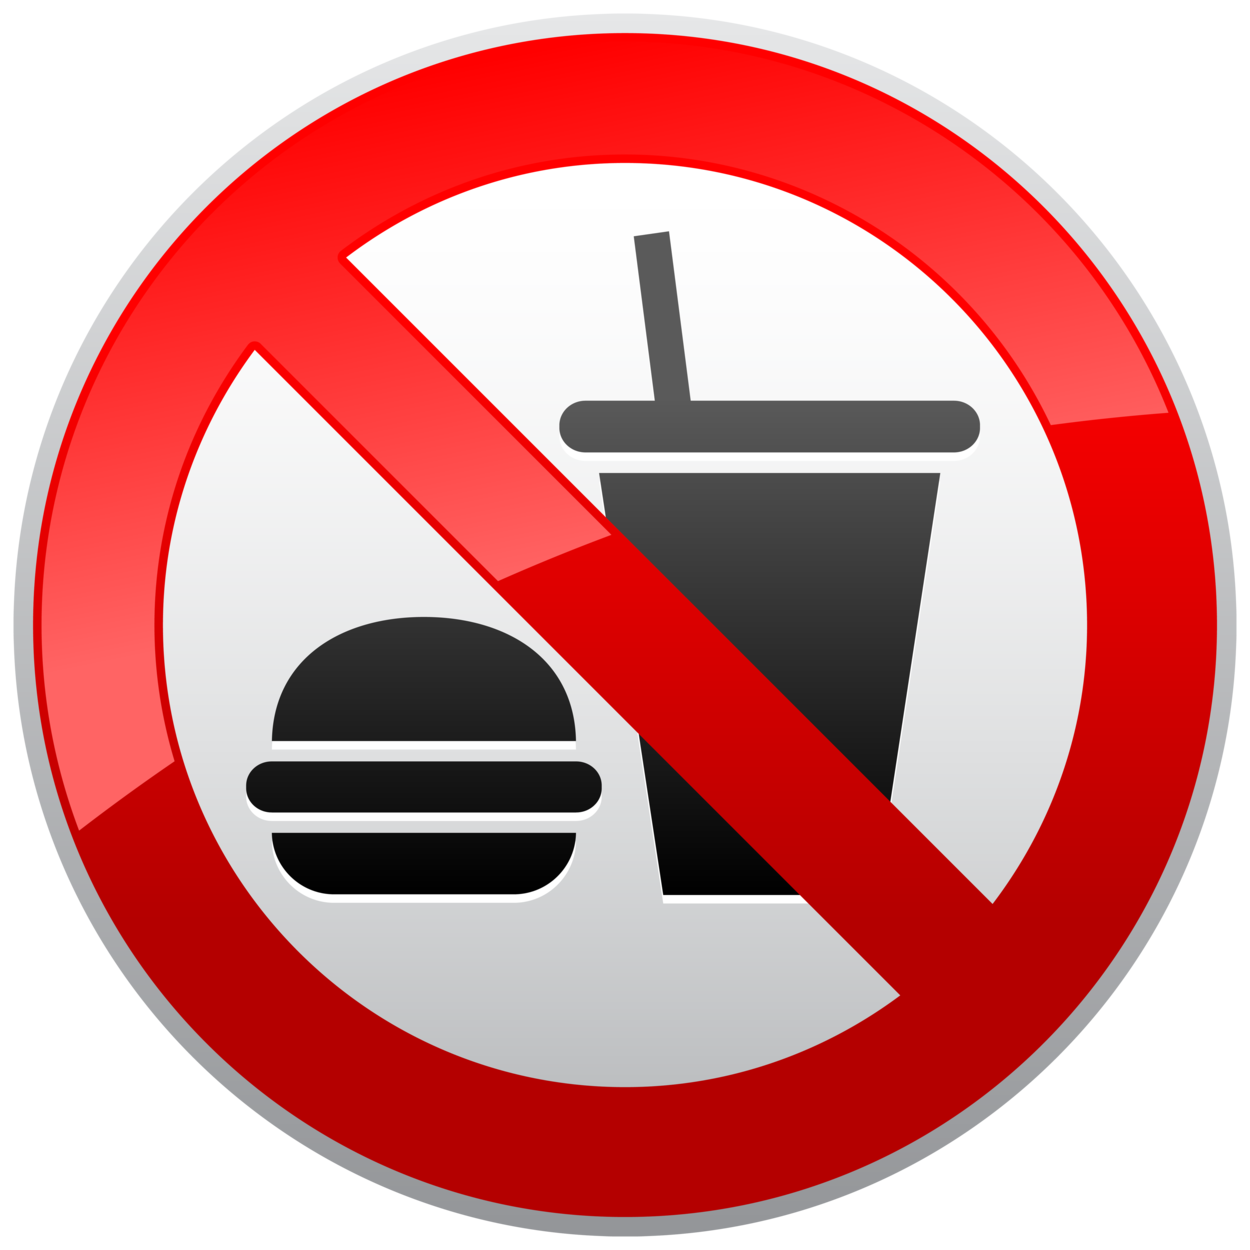 No eating or drinking. Danger clipart non smoking